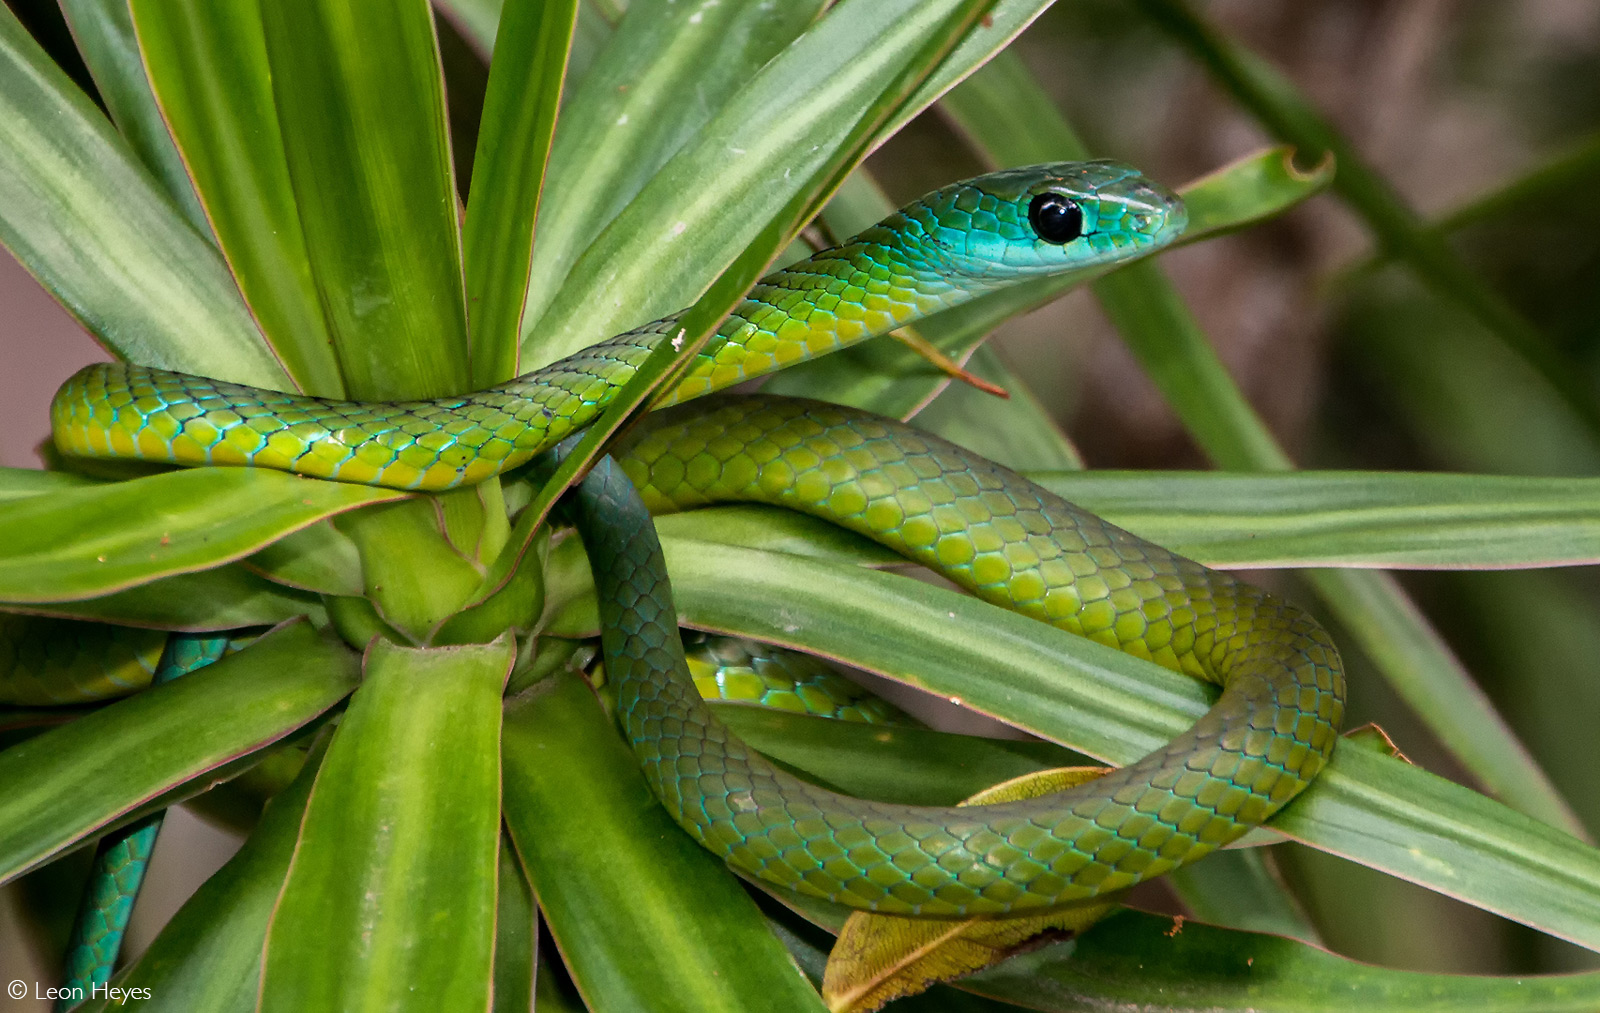 Boomslang (tree snake) makes a surprise visit to a garden at a holiday resort on the KwaZulu-Natal South Coast, South Africa © Leon Heyes